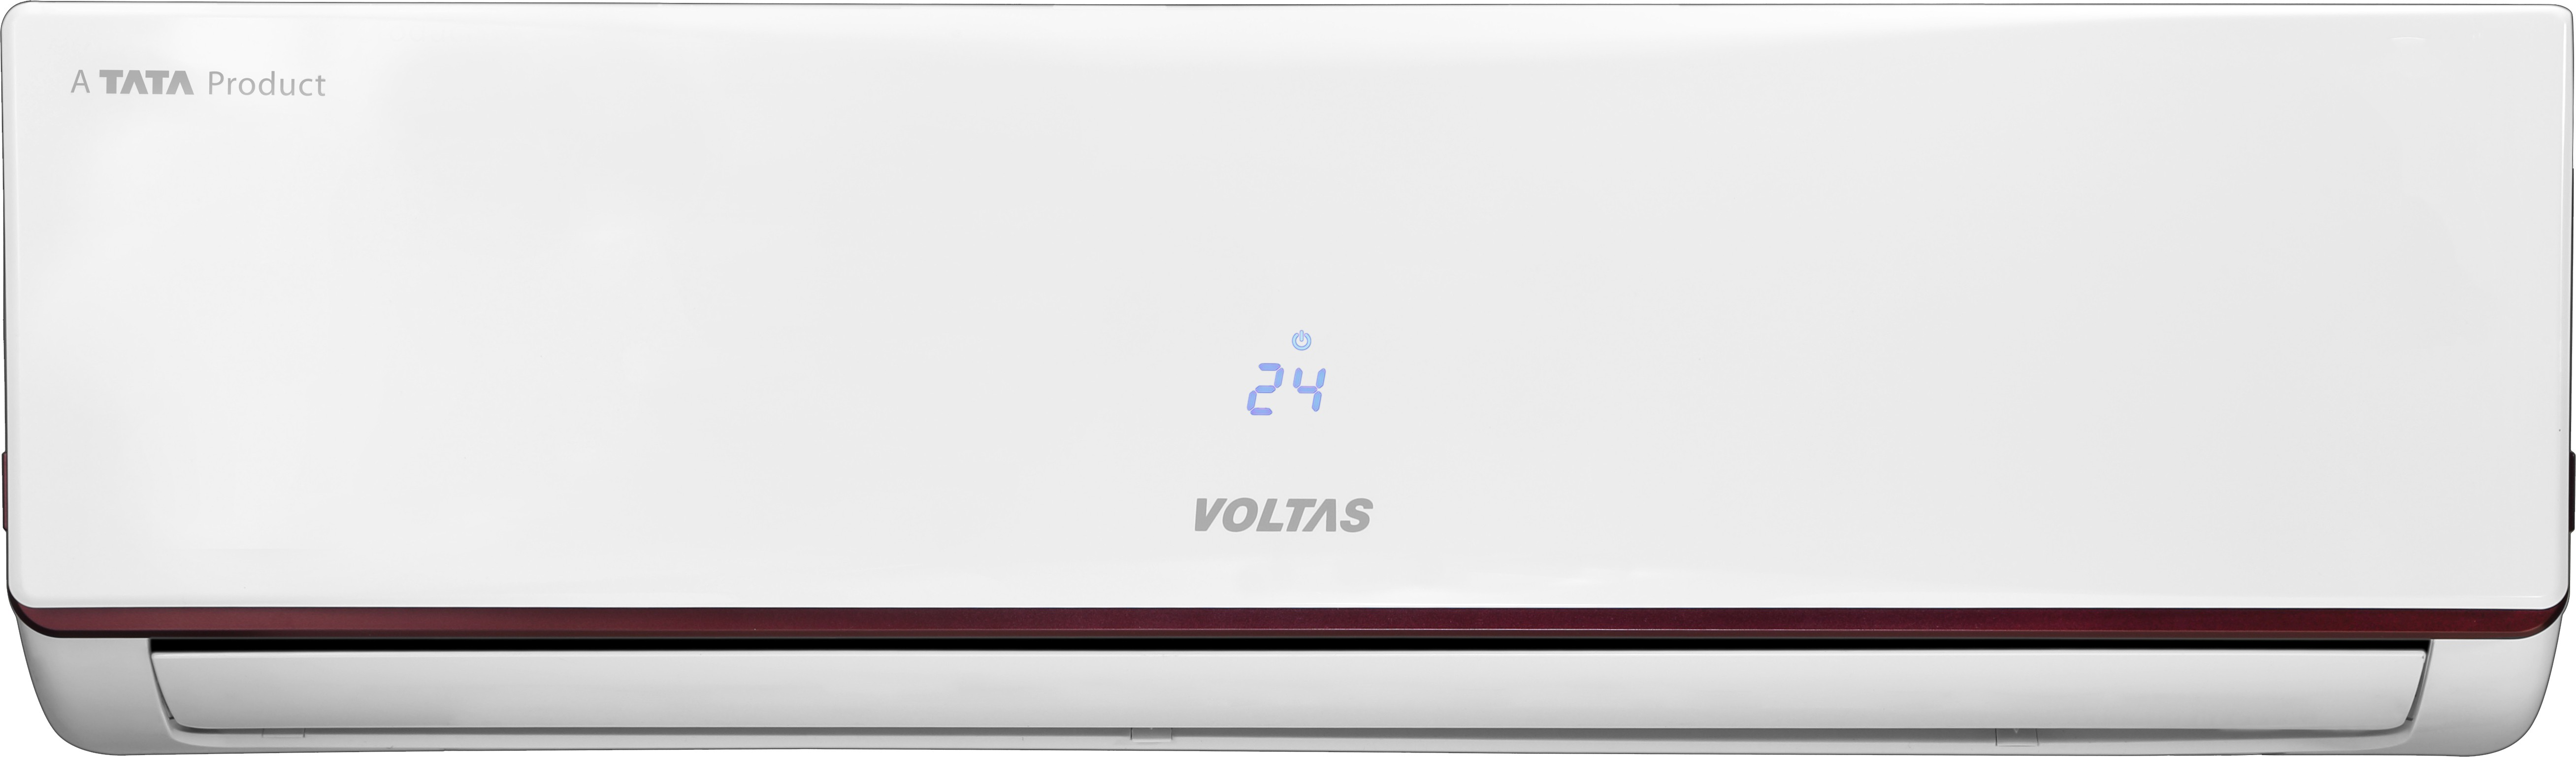 Voltas 181 JZJ1 1.5 Ton 1 Star BEE Rating 2018 Split AC Image